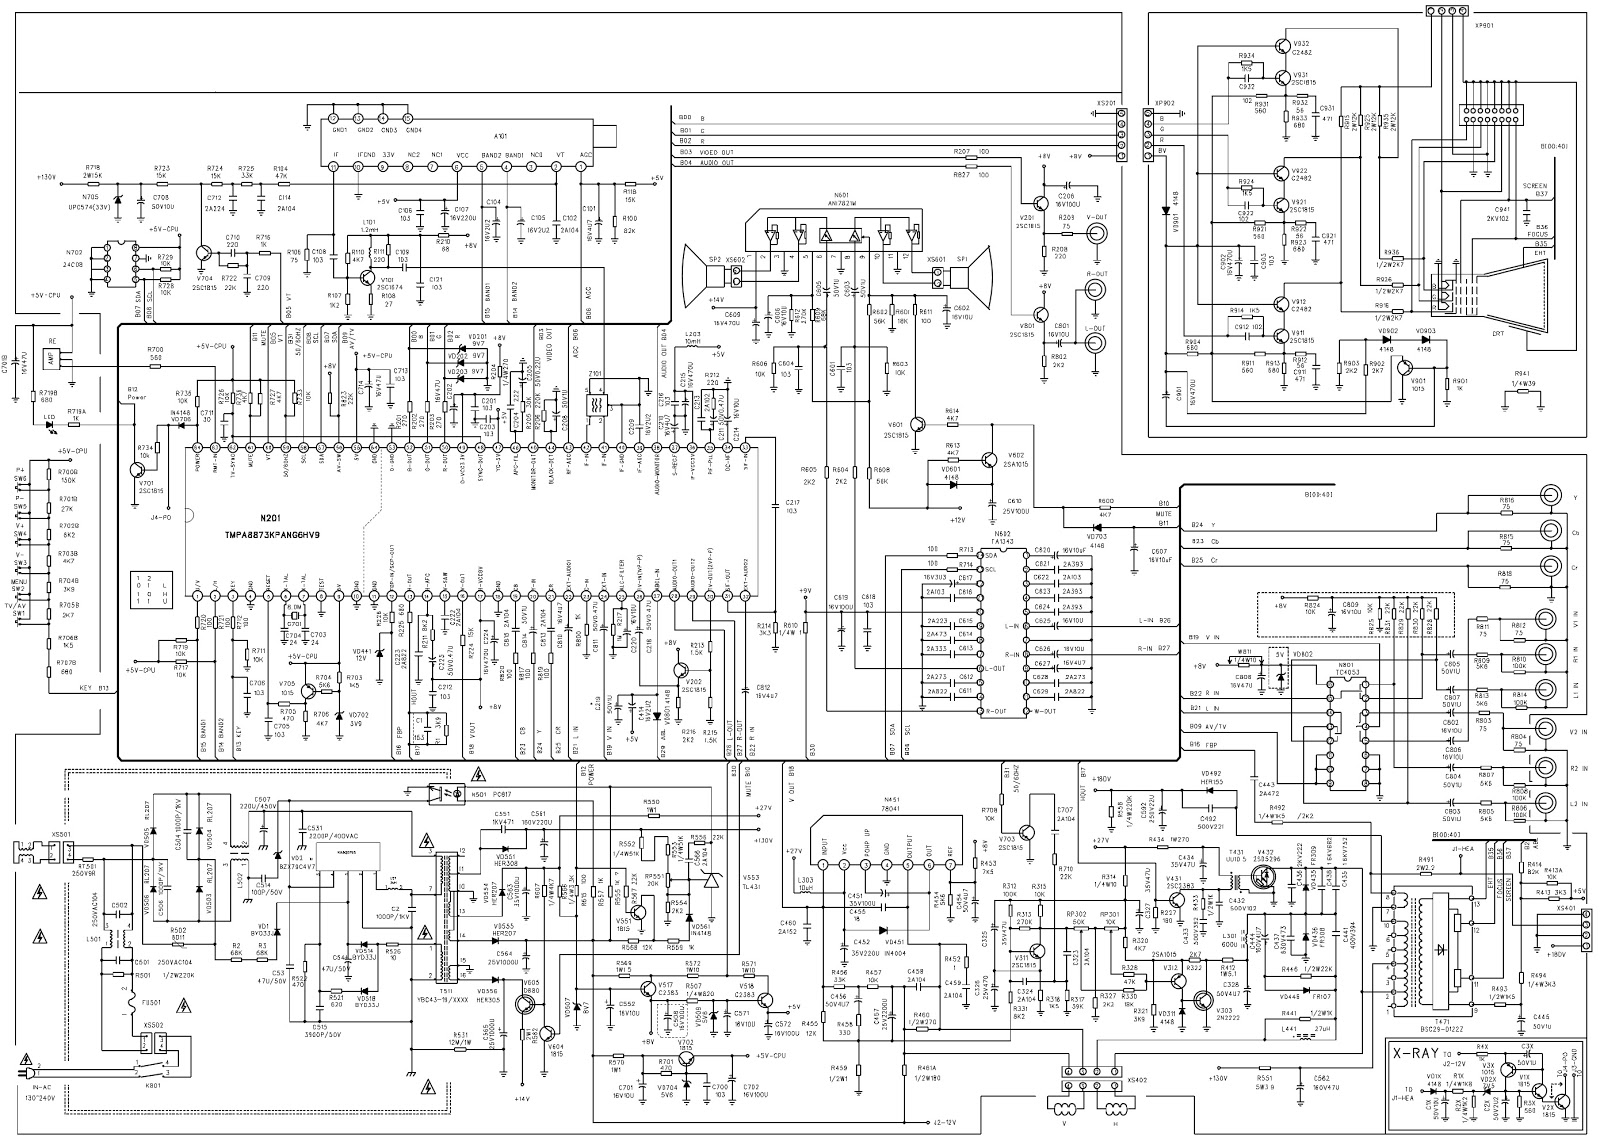 hight resolution of colour tv circuit diagram tmpa8873kpang6hv9 syscon chroma ic palntsc crt tv circuit diagram and pwb schematic diagrams